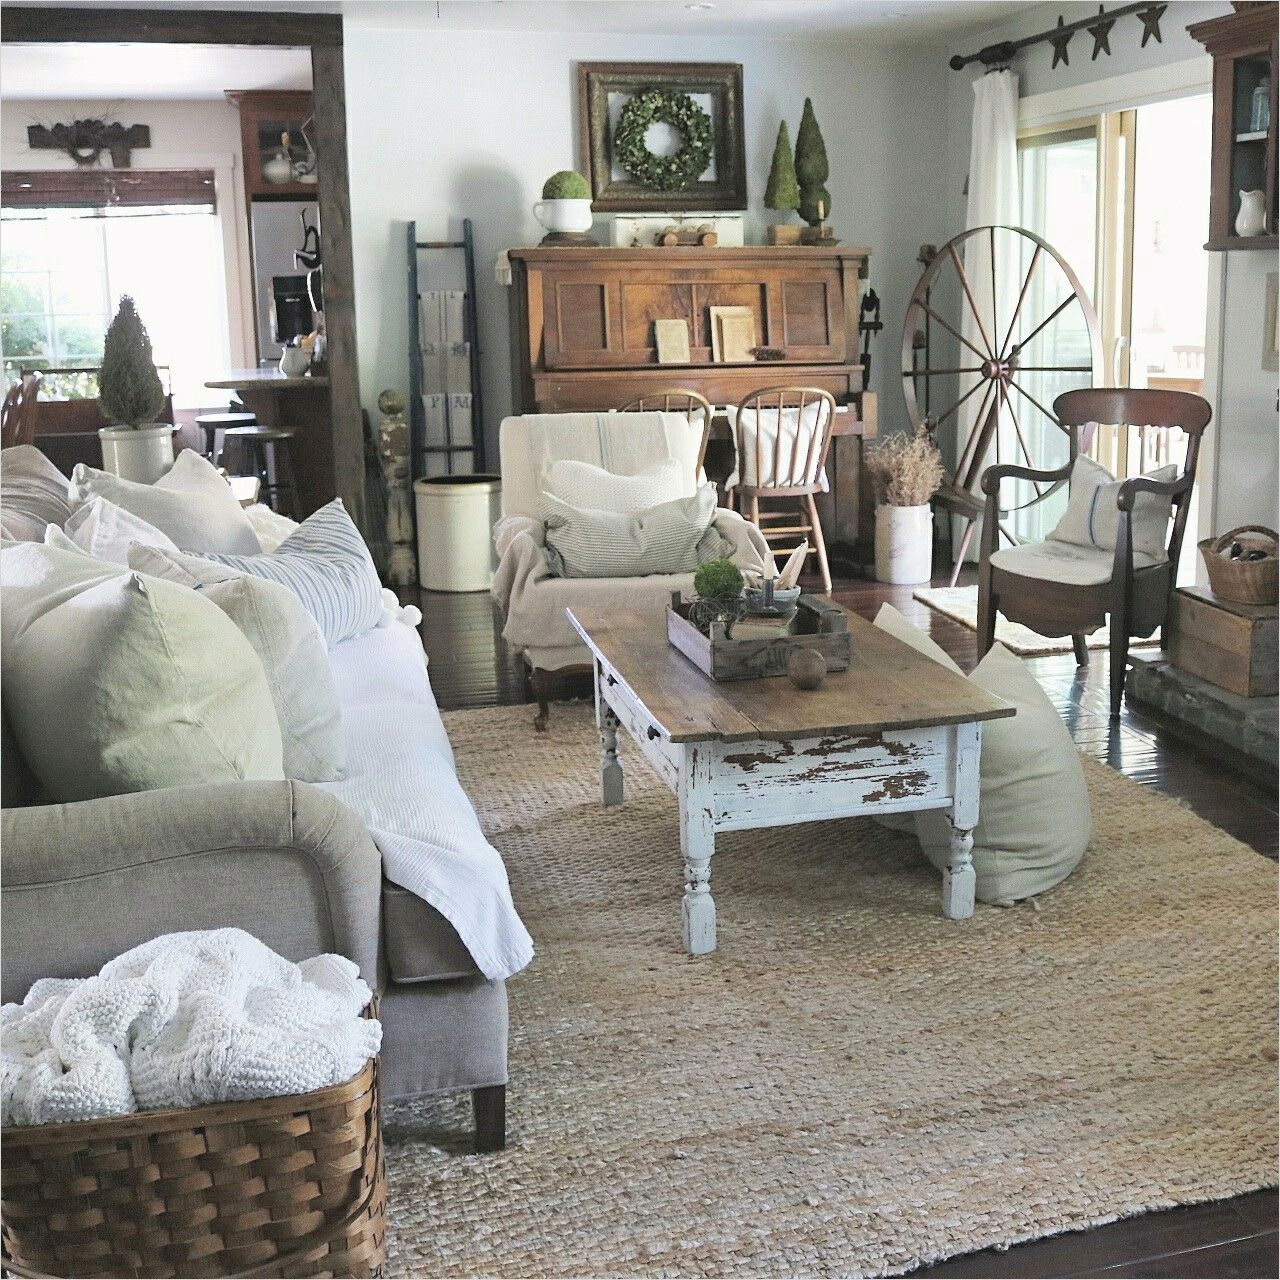 42 Cozy Country Farmhouse Living Room 19 Farmhouse Living Room at Home On Sweetcreek Decoration for the Piano Pinterest 8